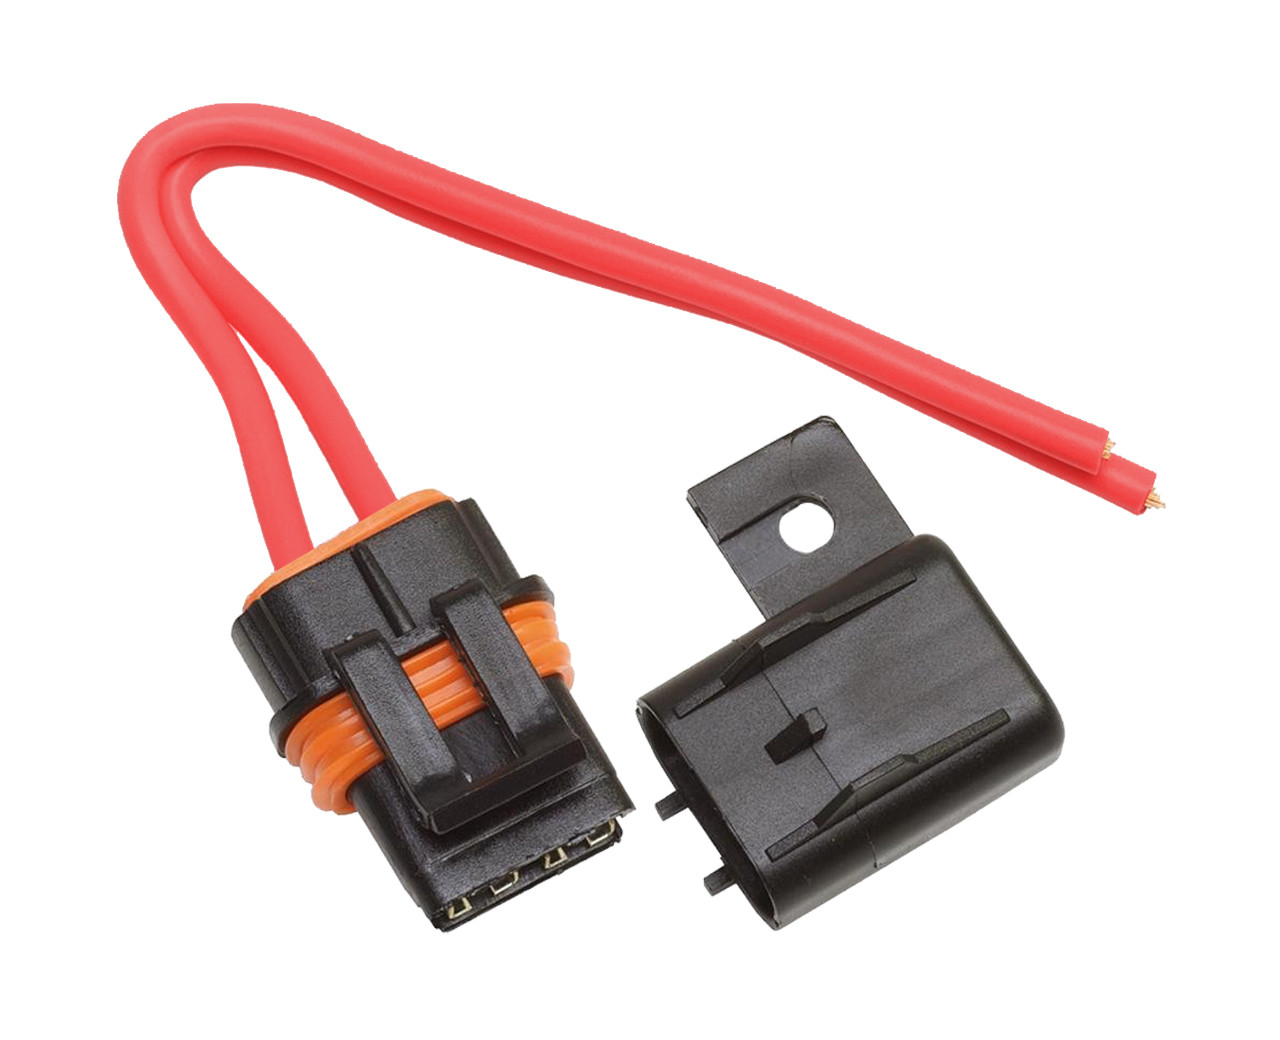 [DIAGRAM_4FR]  ATC/ATO Fuse Holder up to a 40 Amp Fuse, 10 AWG Lead | Deutsch Fuse Box |  | Pacer Group